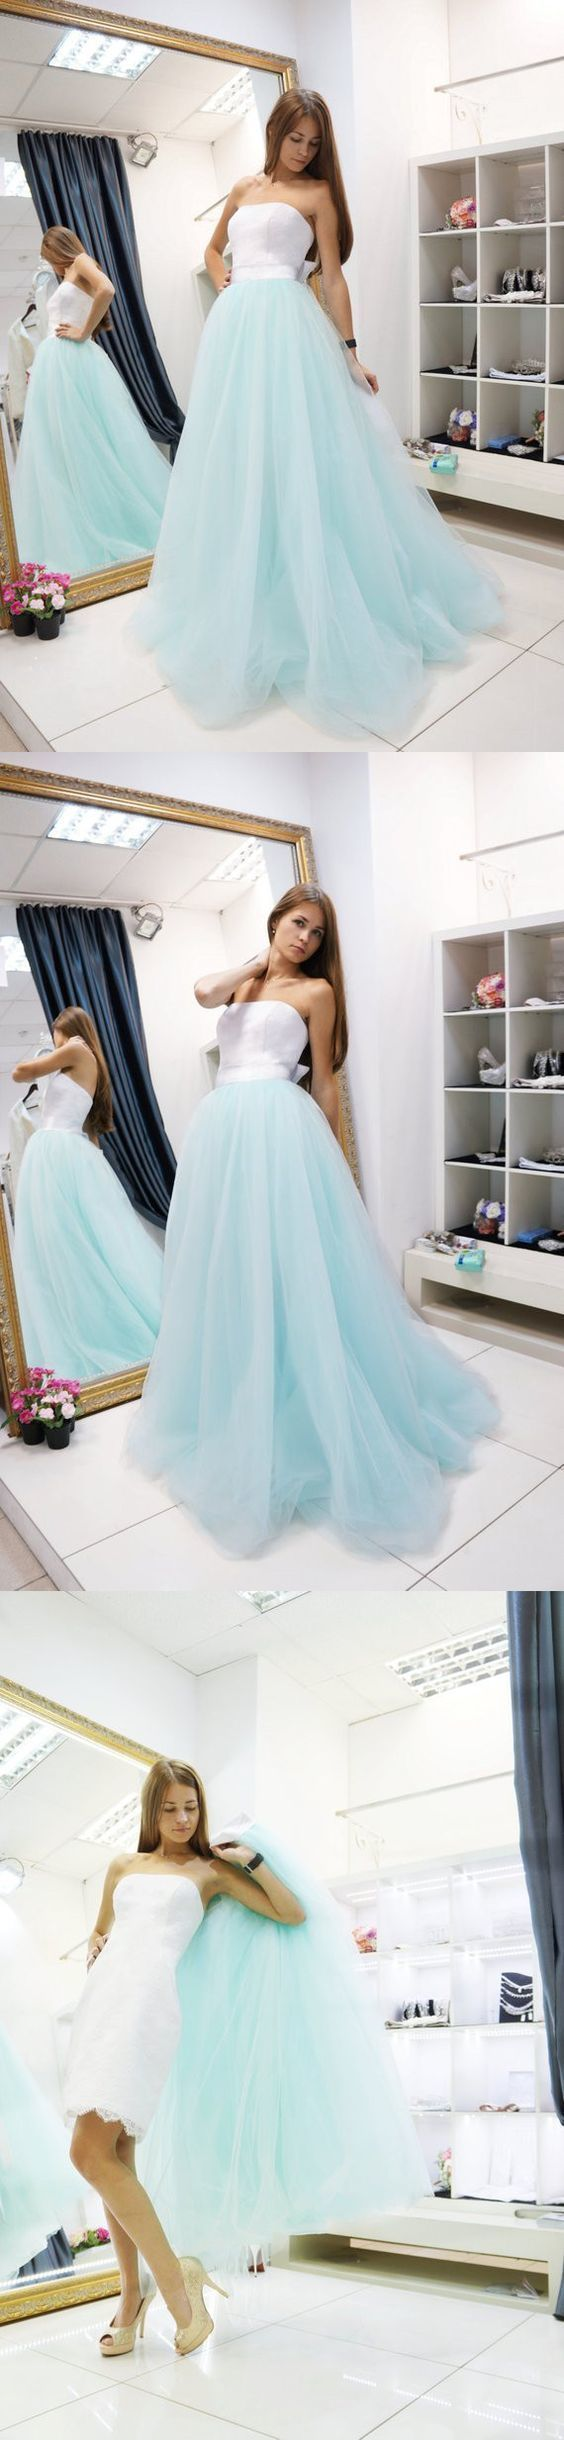 Elegant Strapless Green Tulle Evening Dress, Pretty White Lace Prom Dress with